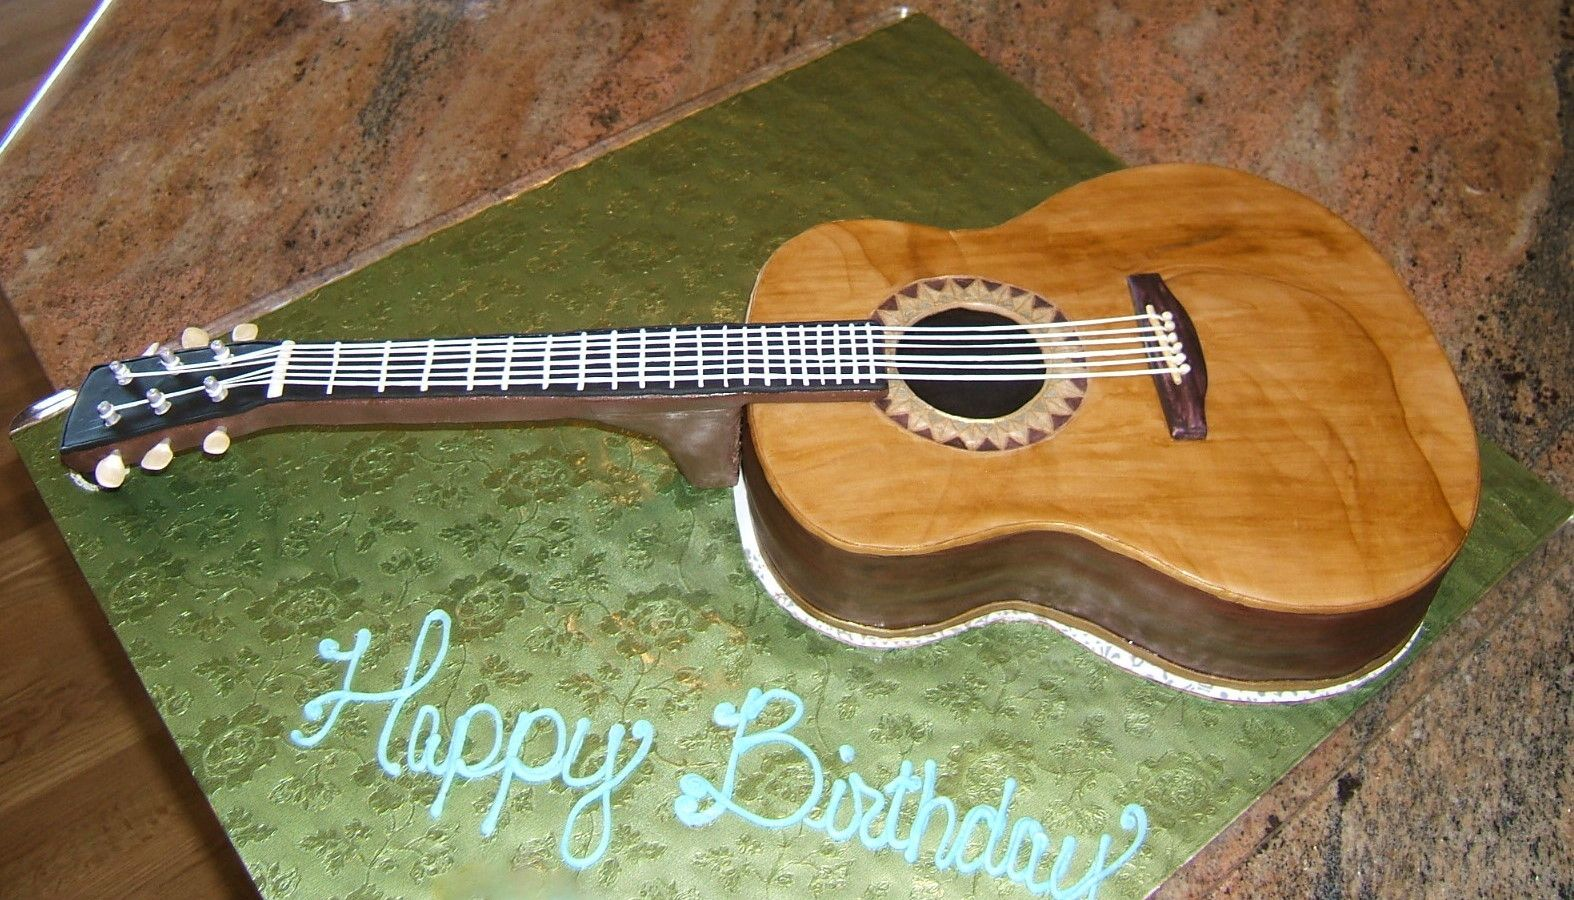 Images For Althappy Birthday Image With Guitar